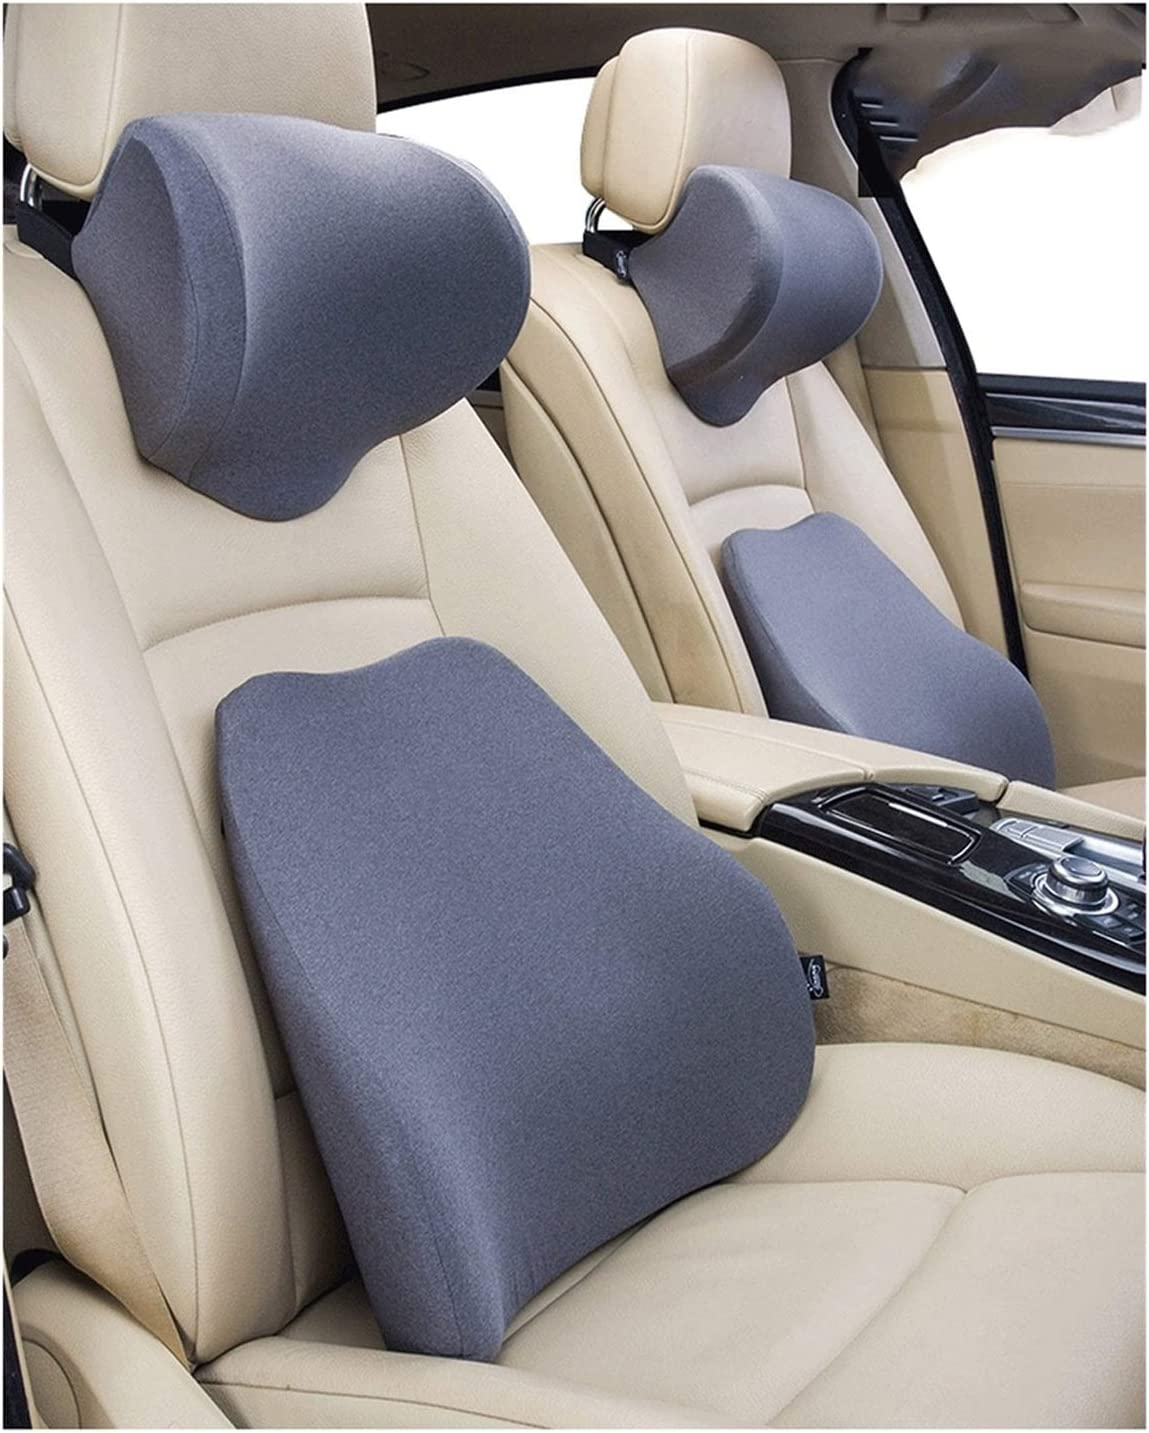 QSWL Car Neck Pillow - Lumbar Now on sale Auto Support Seat Reservation Headrest